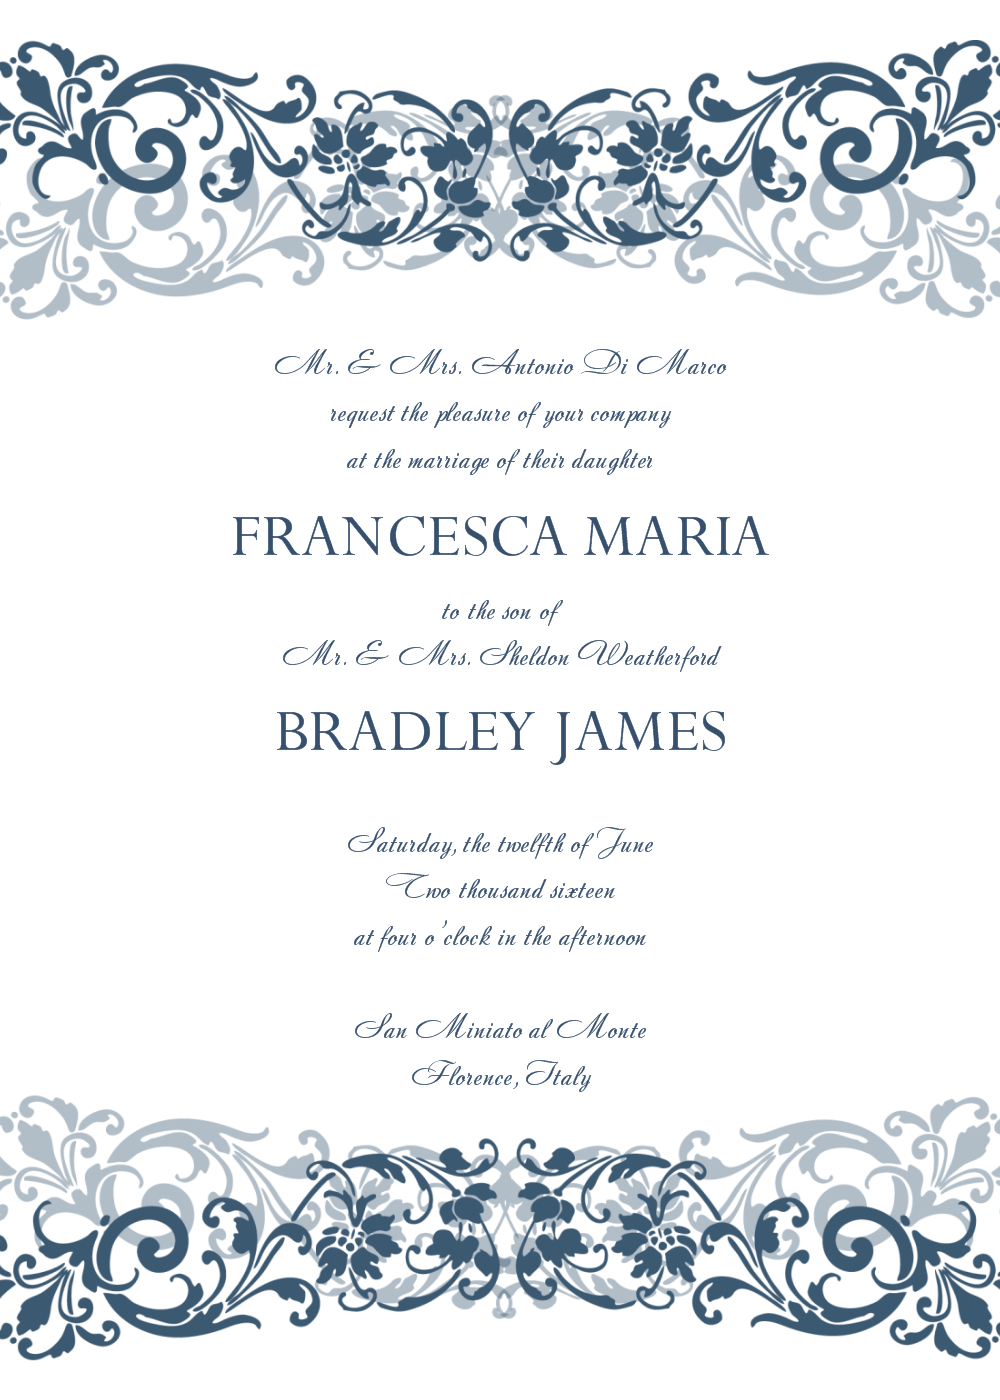 Free Wedding Invitation Templates For Word | Wedding Invitation - Free Printable Wedding Cards